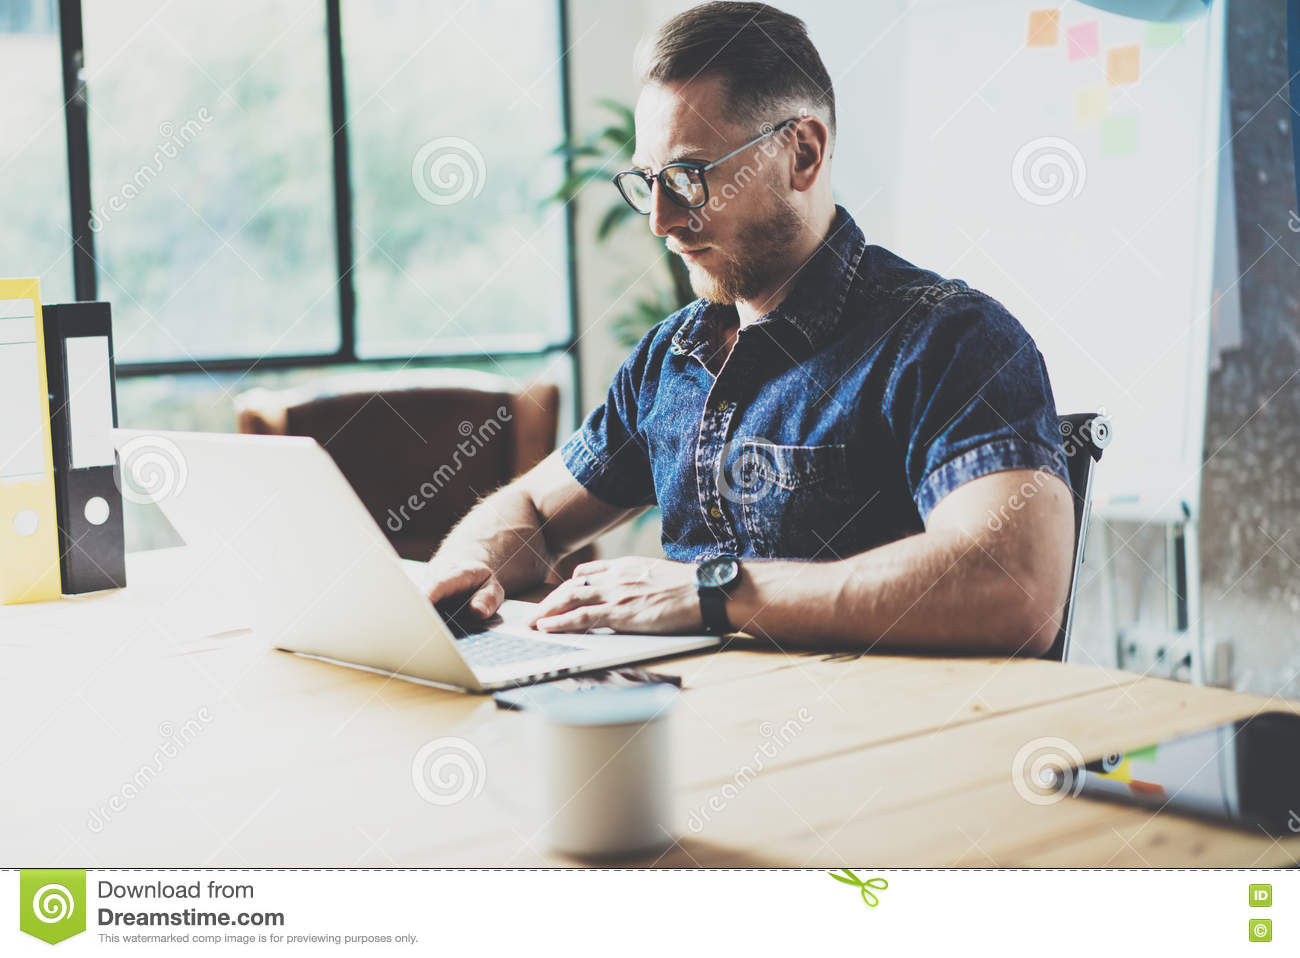 Bearded Graphic Designer Working Wood Table Laptop Modern Interior